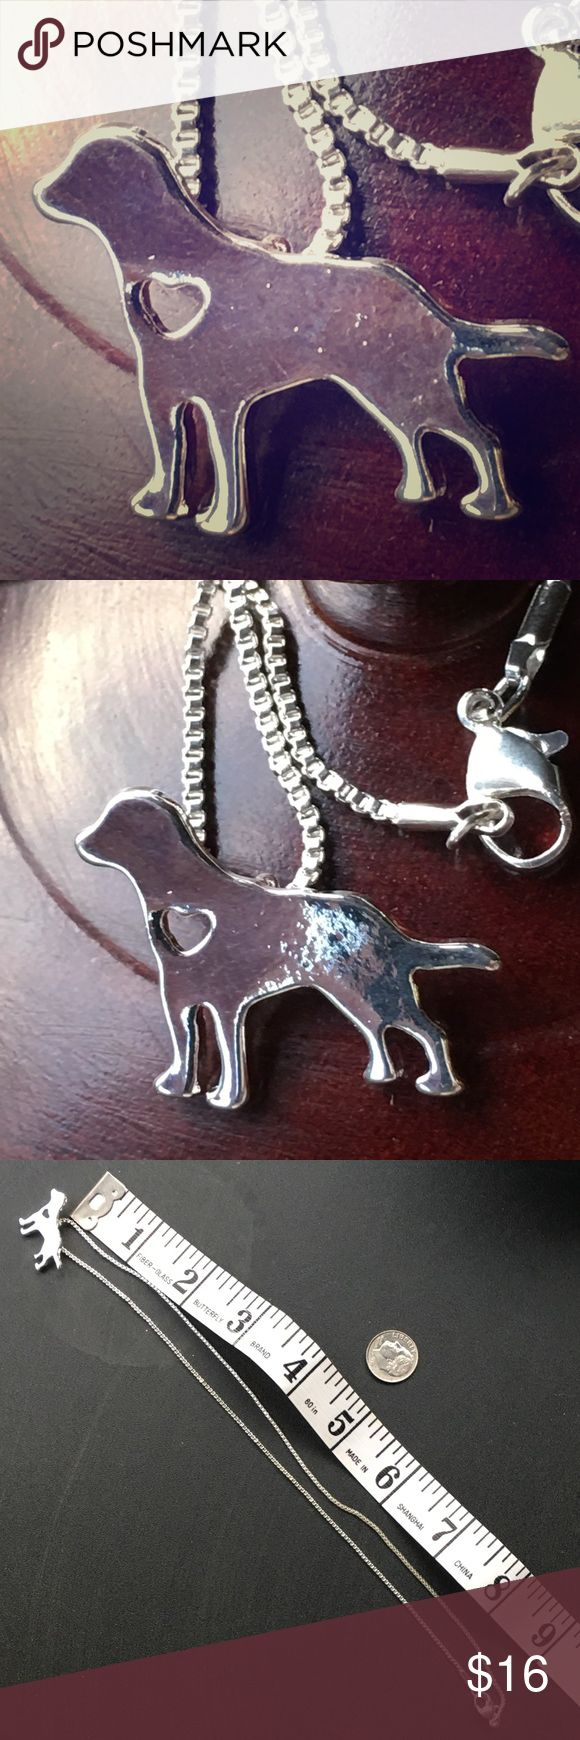 Irish setter / Labrador retriever love ❤️ necklace Adorable doggie necklace. Perfect gift for any dog lover. Irish setter / Labrador retriever love ❤️ necklace. This silhouette can represent many breeds including black lab, yellow lab golden retriever , or your favorite mutt. Jewelry Necklaces